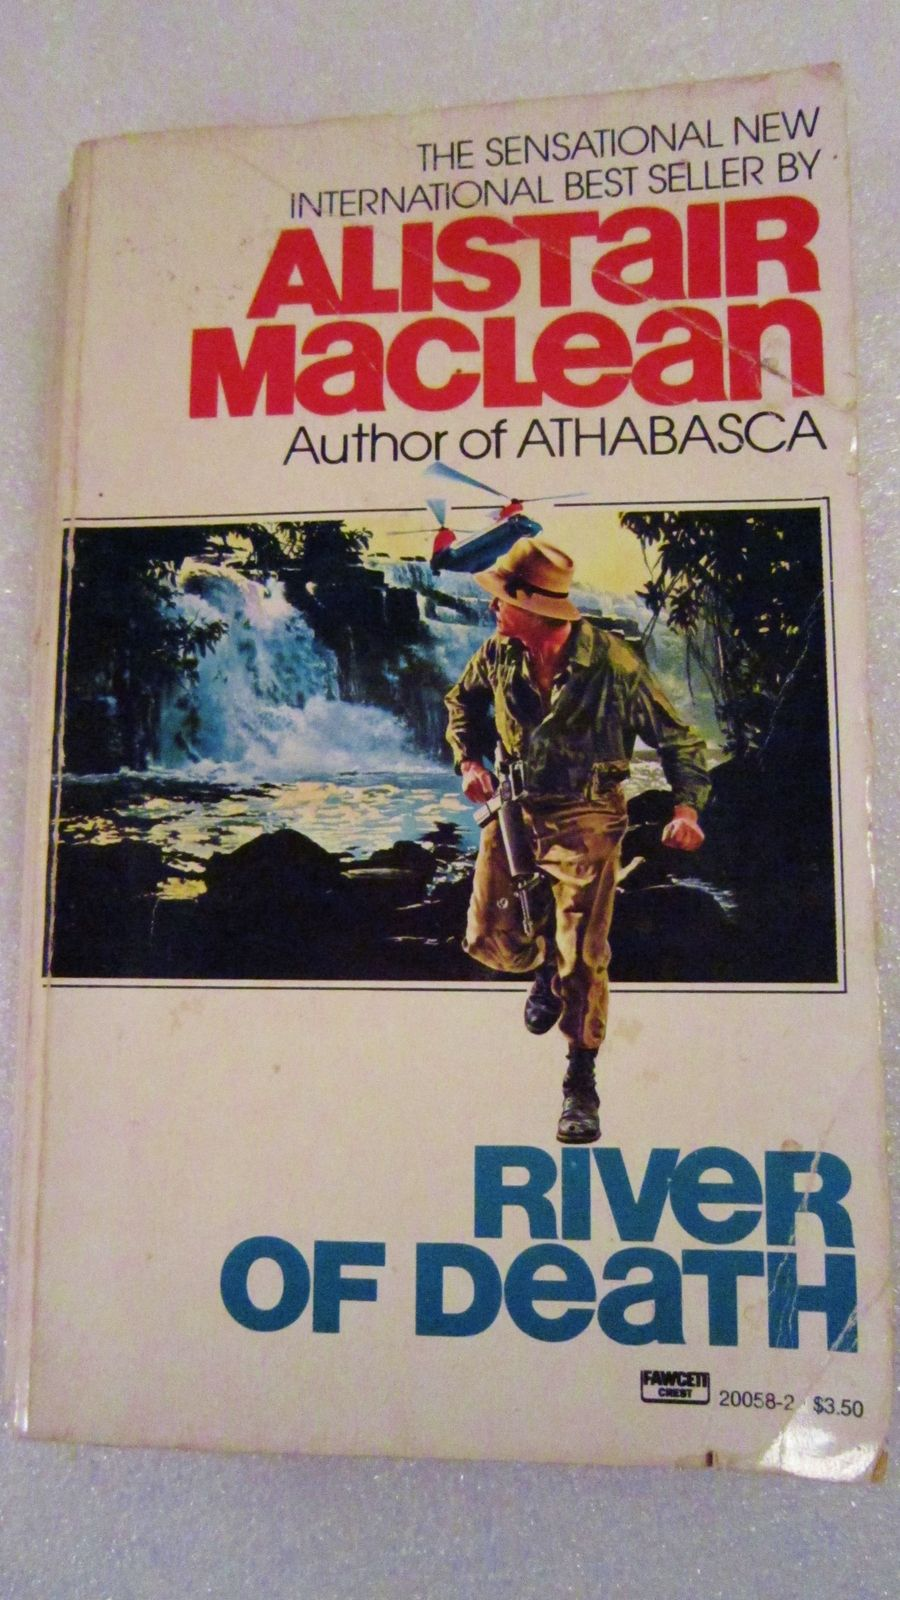 River of Death 1983 Alistair MacLean | Vintage Books for Sale ...